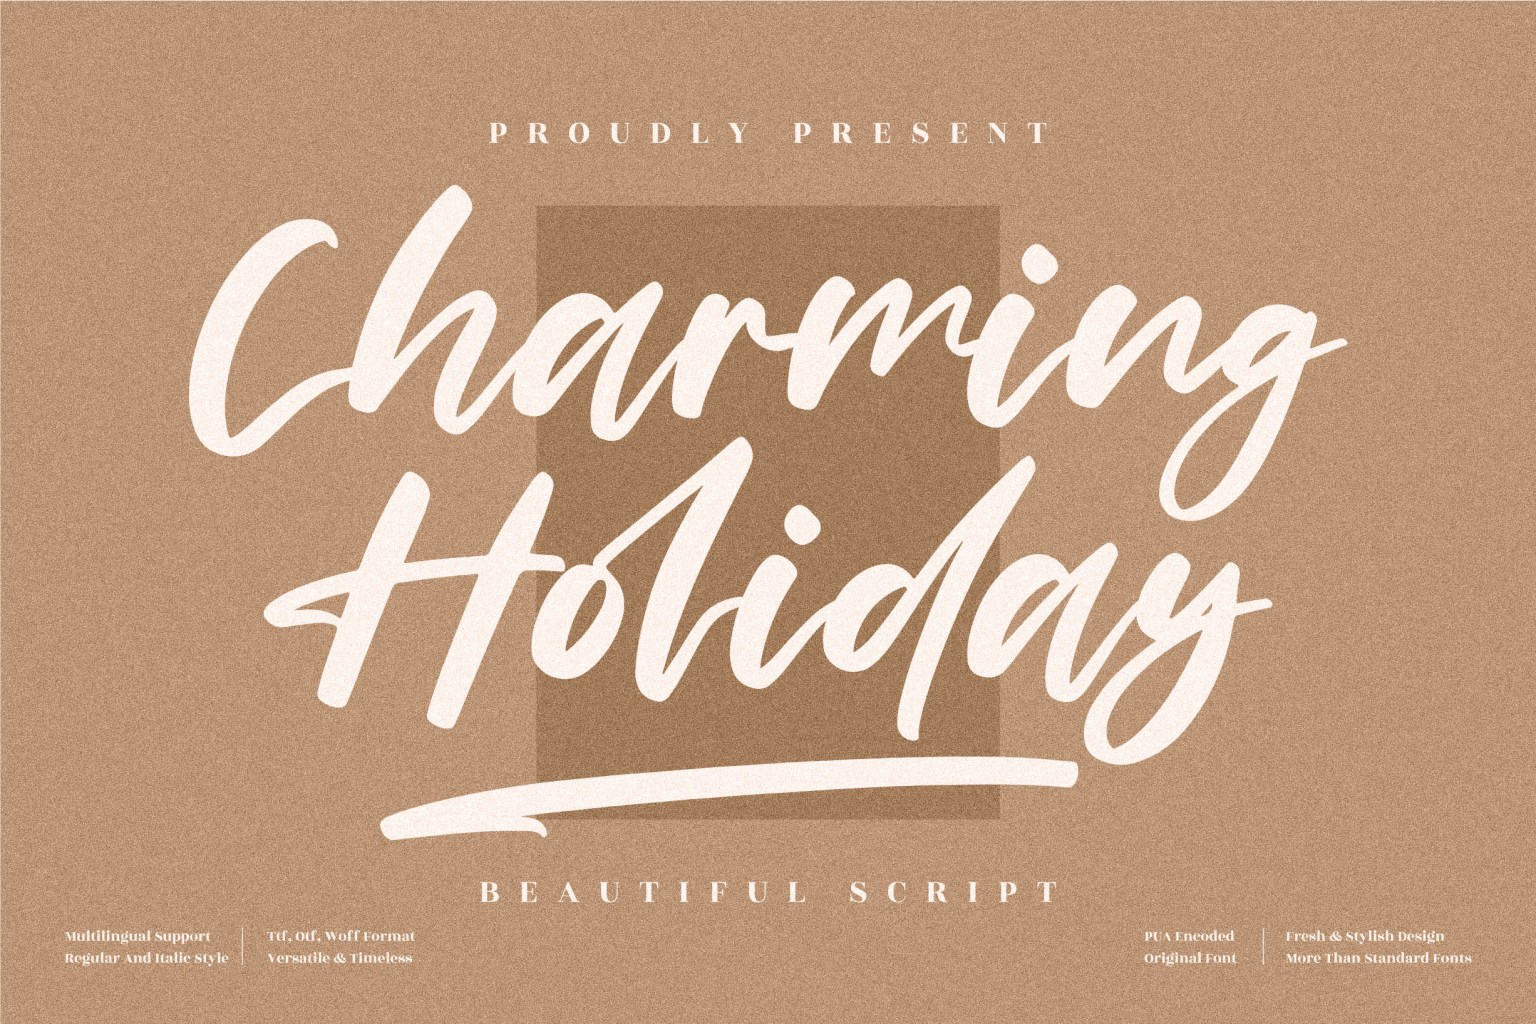 Charming Holiday Script Font